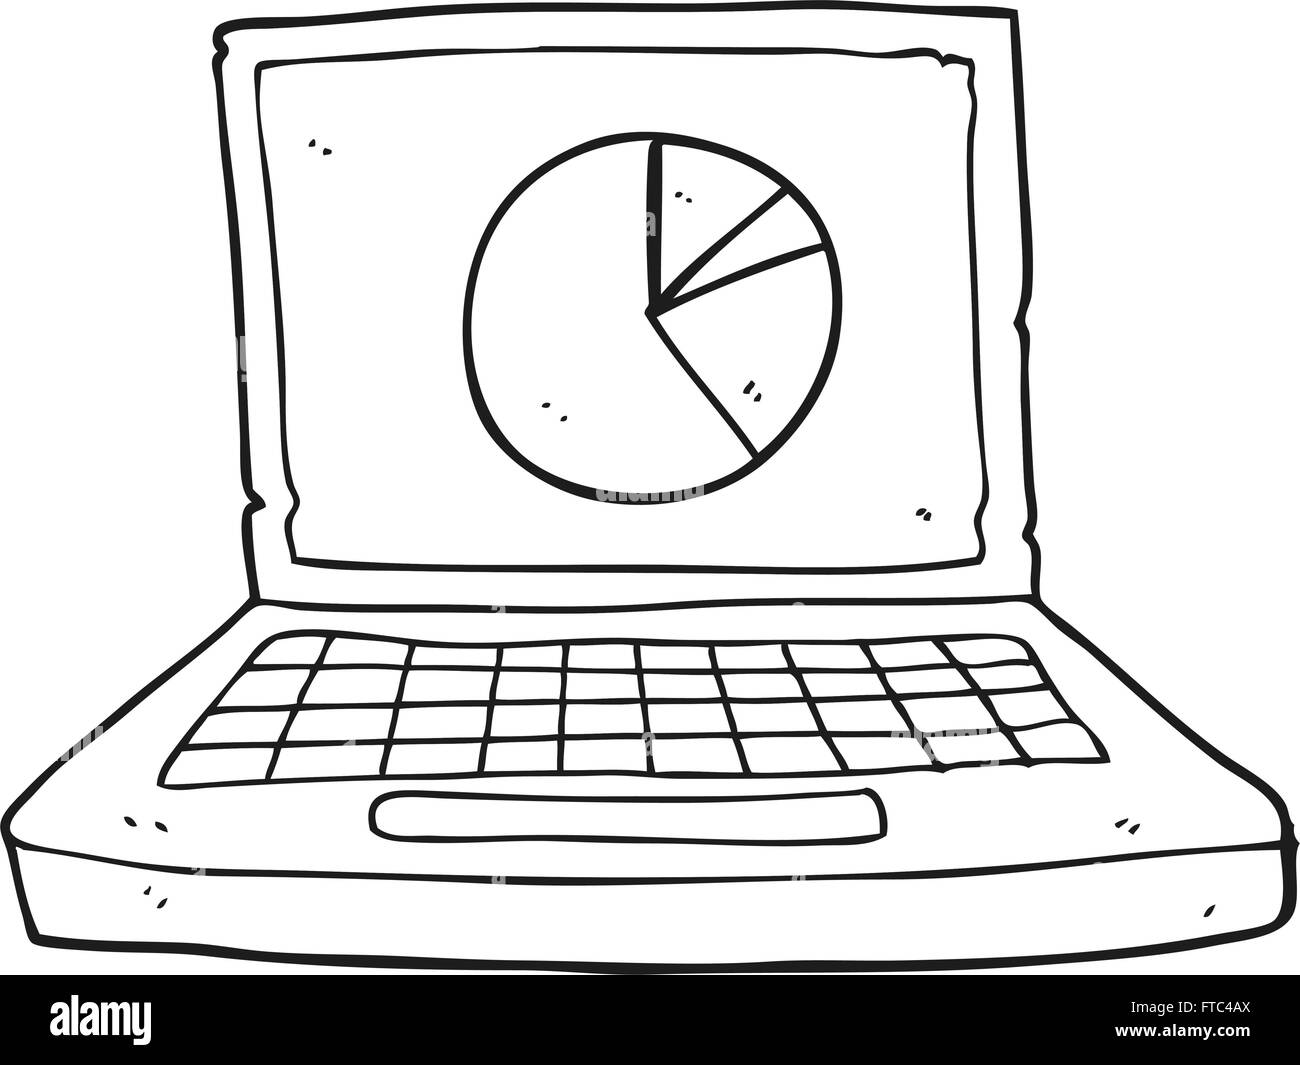 hight resolution of freehand drawn black and white cartoon laptop computer with pie chart stock image